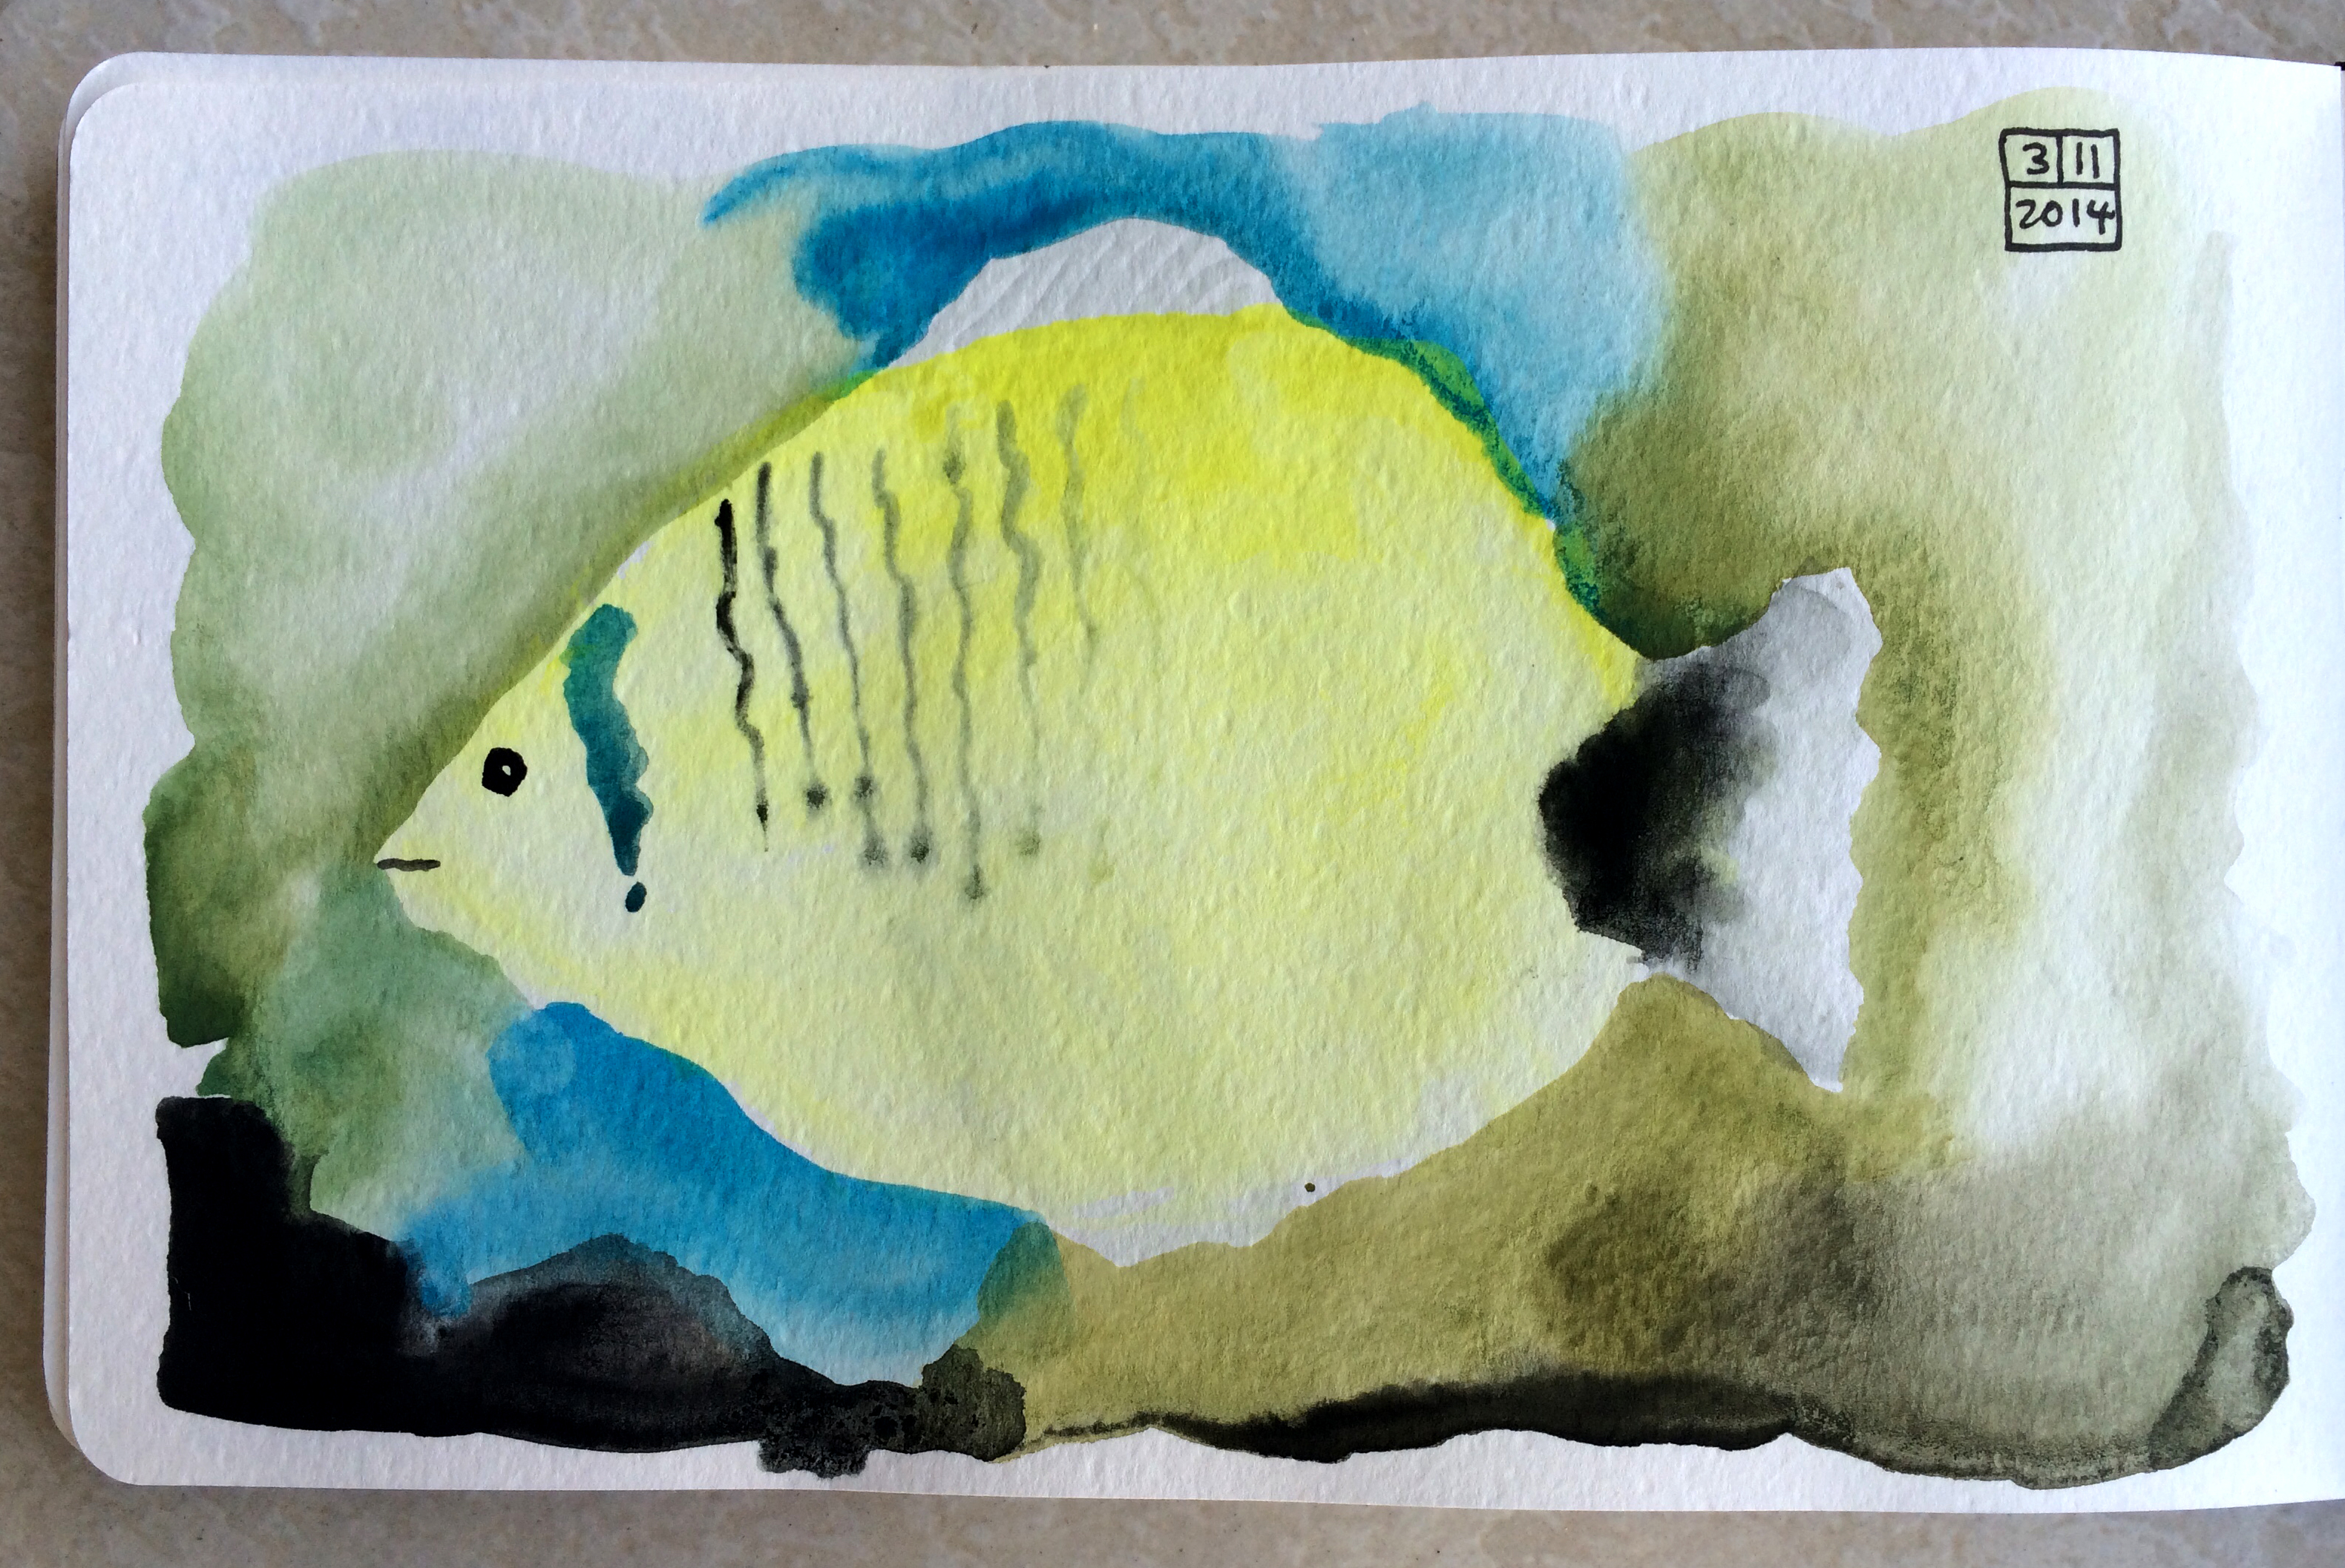 Lemon Butterflyfish